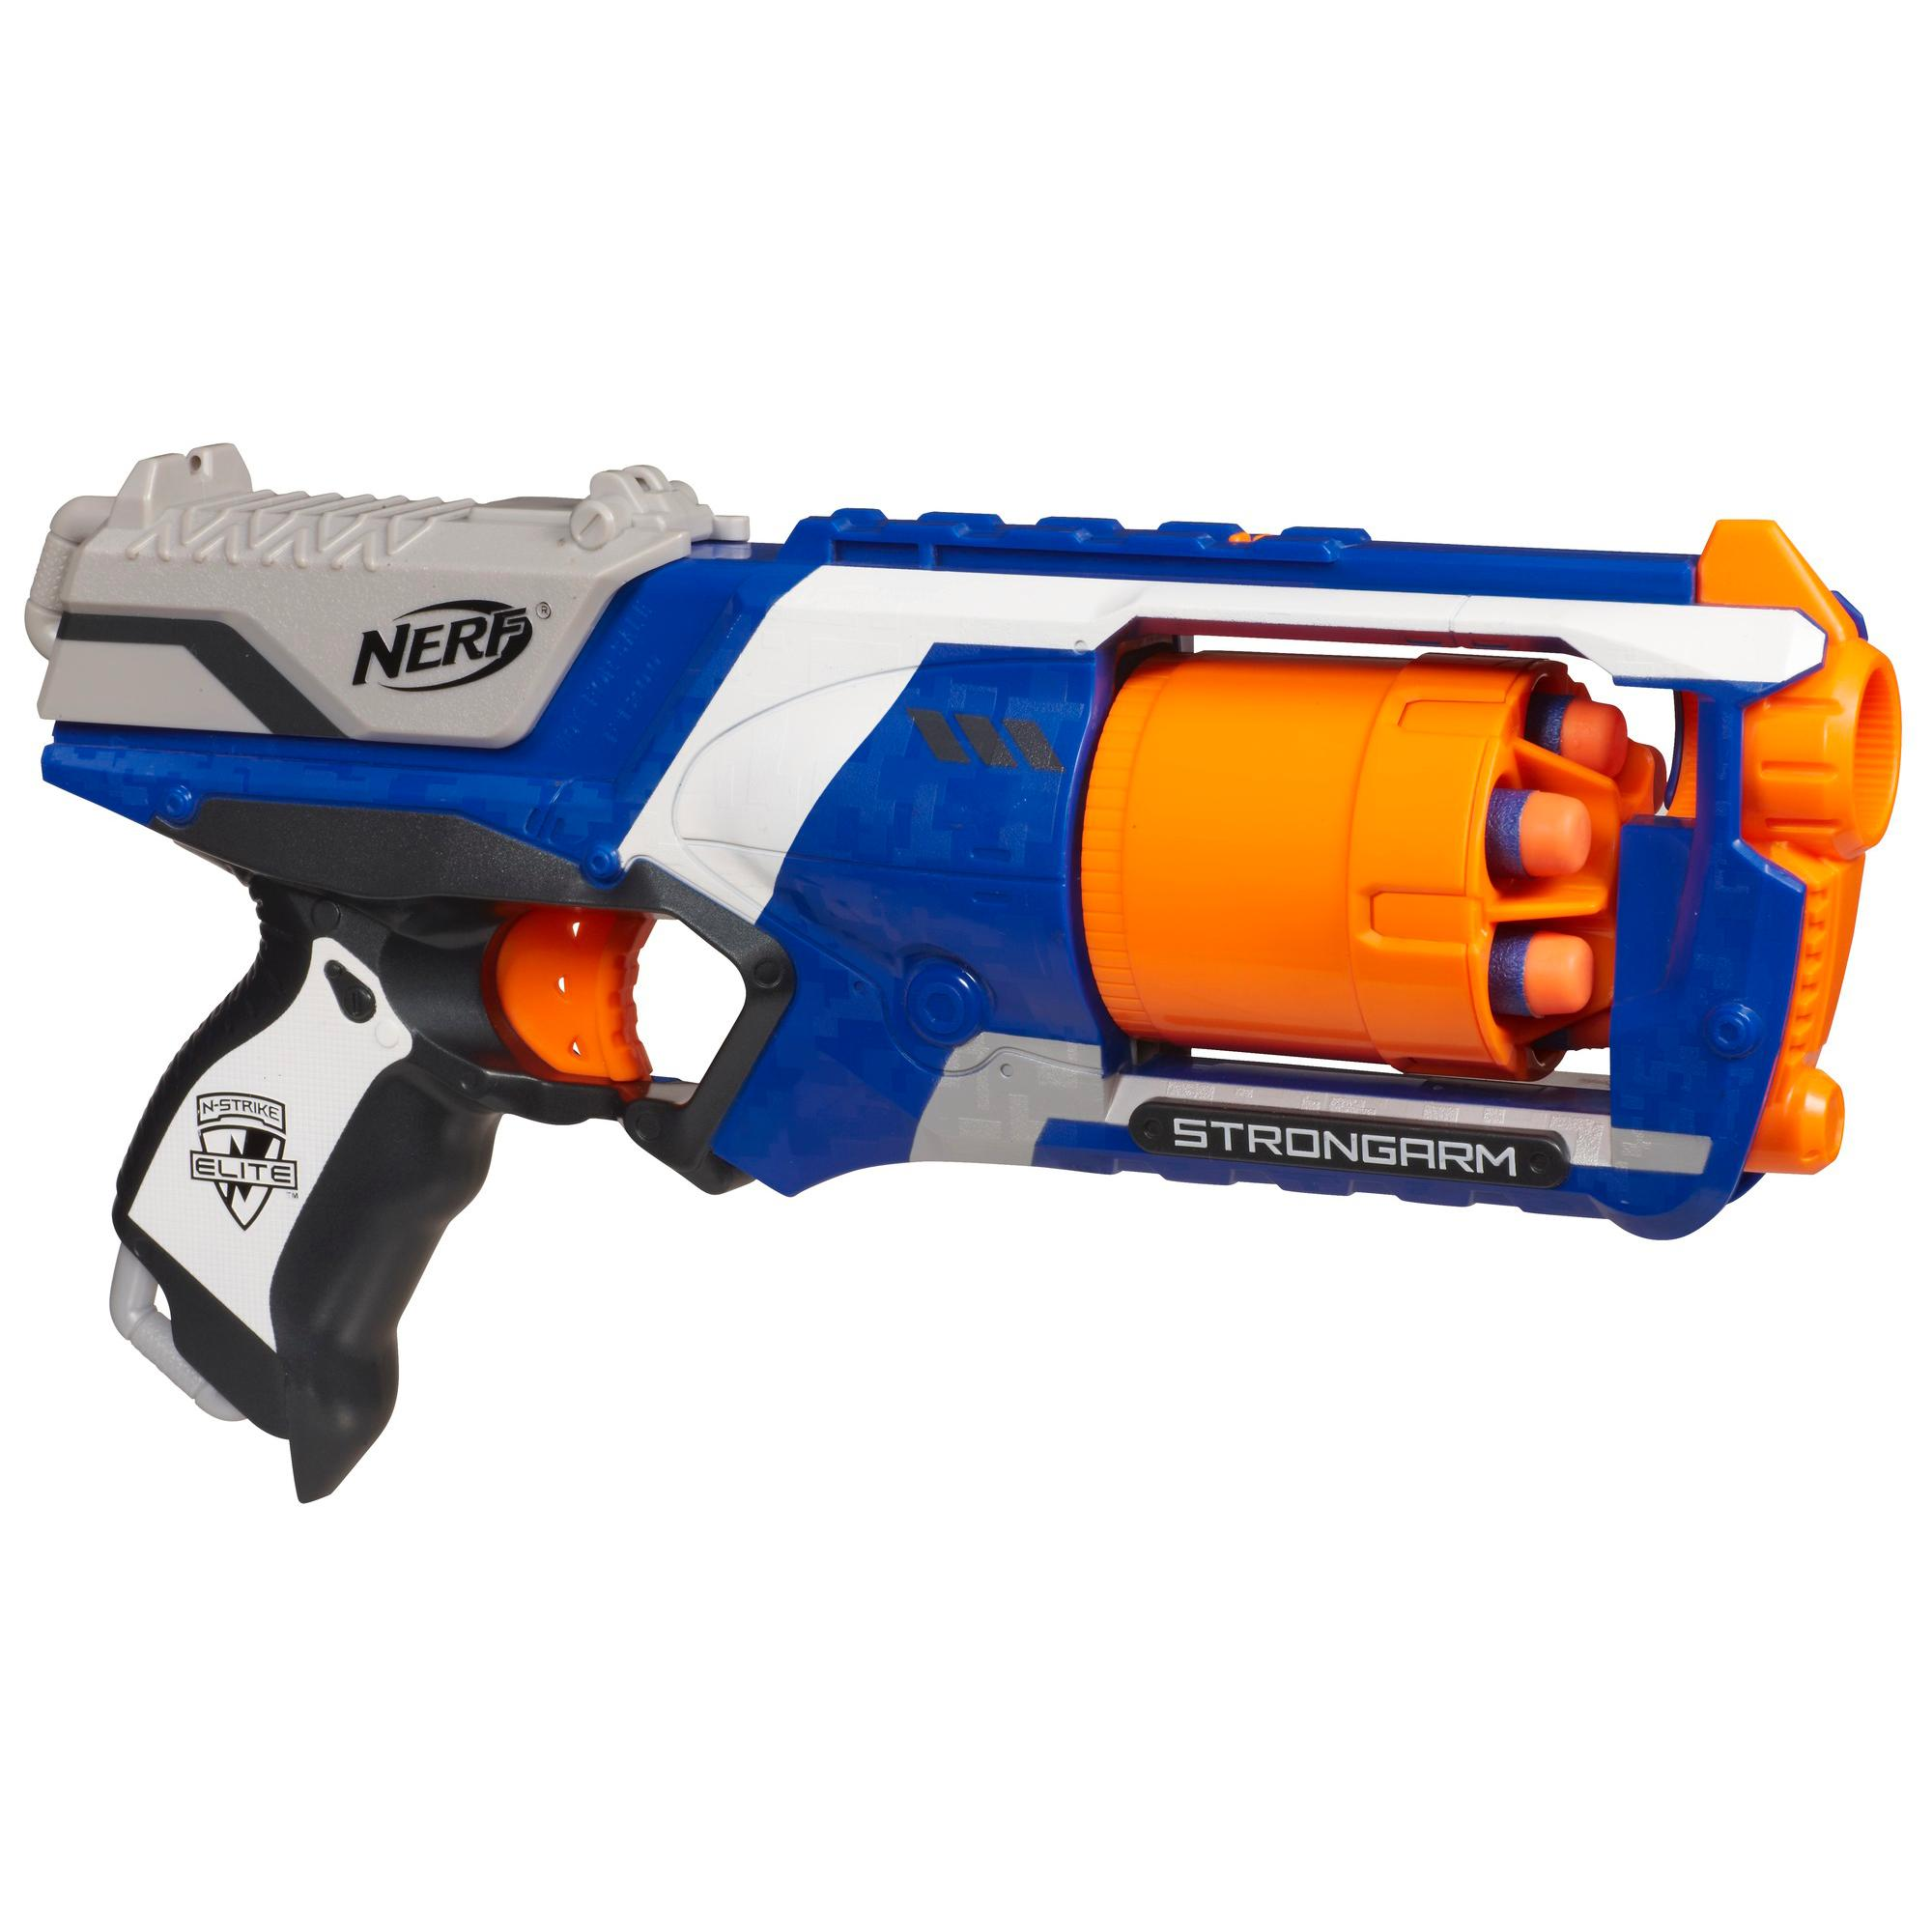 NEW Nerf N Strike Elite Strongarm Blaster Gun Dart Toy Darts Colors Vary May